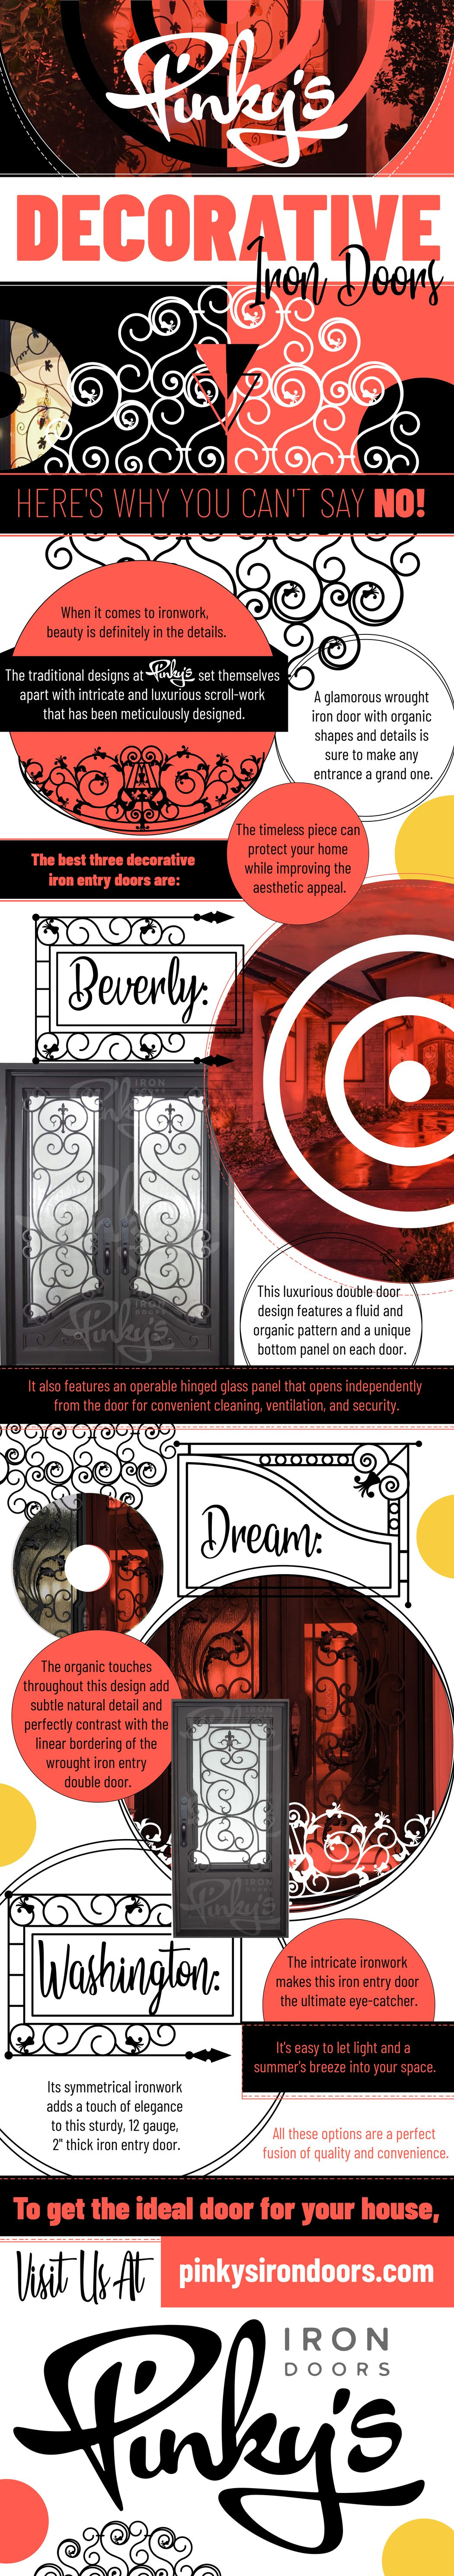 Pinky's Decorative Iron Doors